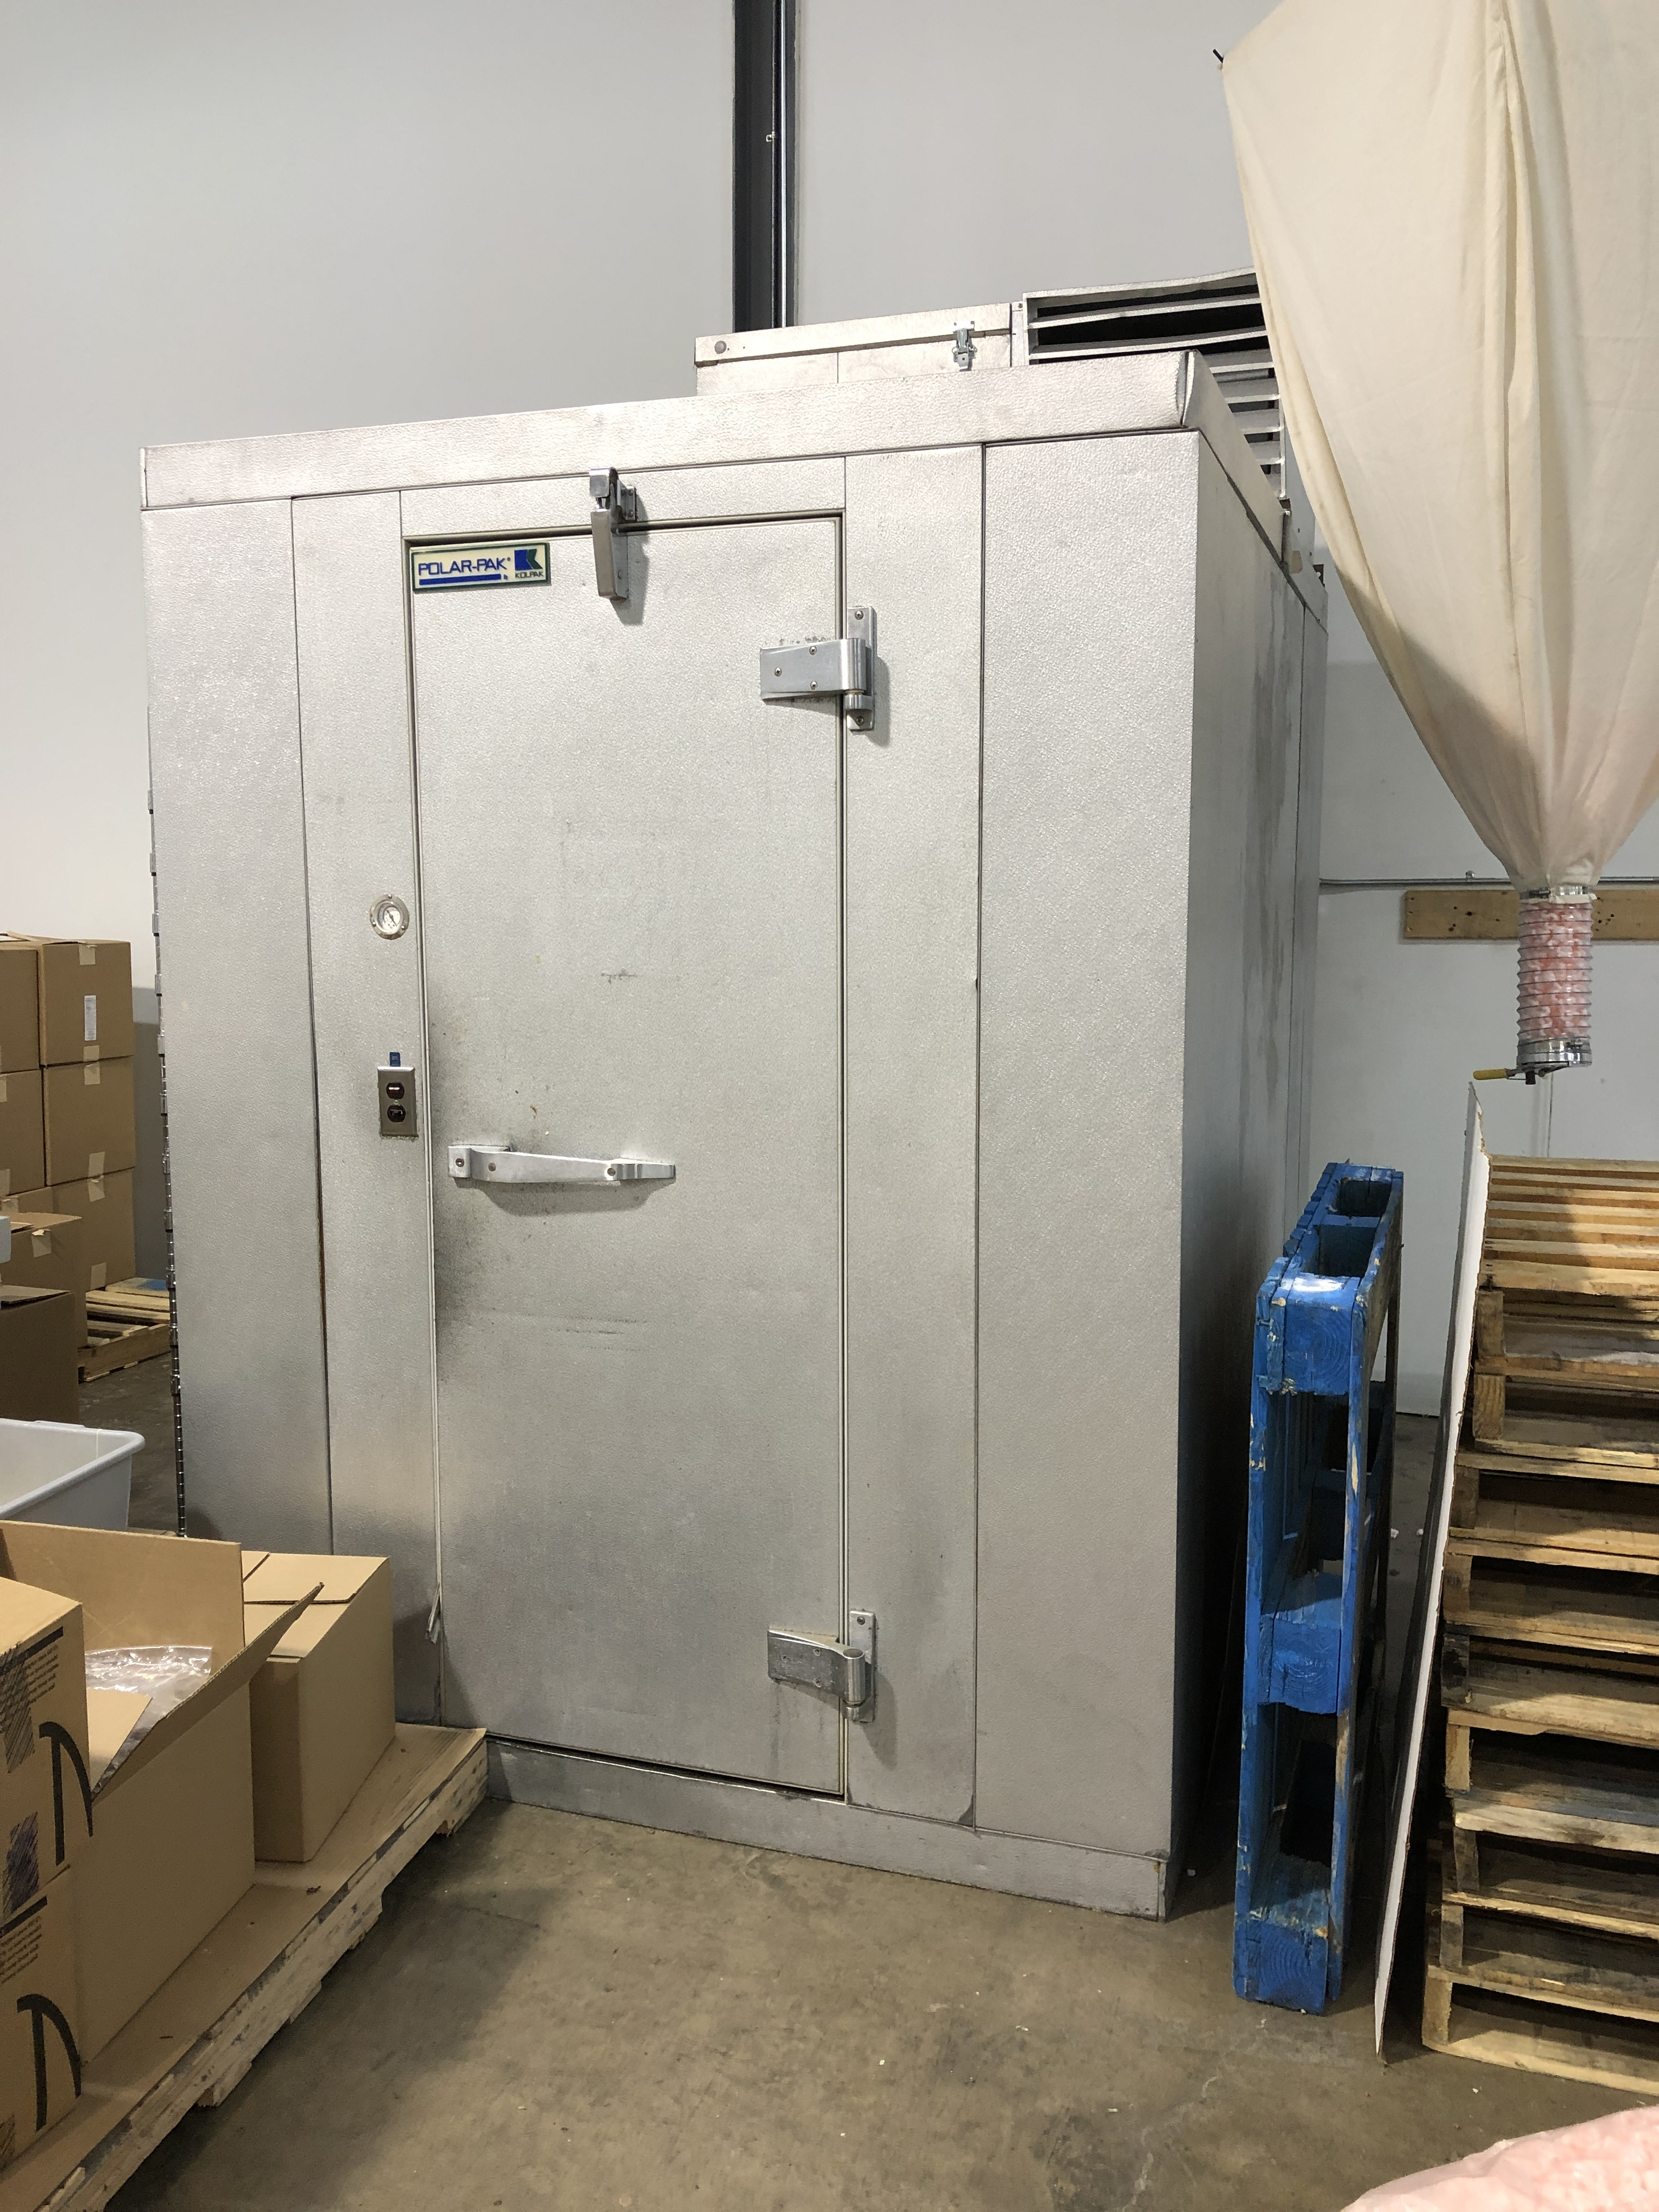 Lot 57 - Kolpak Polar-Pak Walk-in Cooler with top mounted freon compressor. Outside dimensions 8 x 6 x 7.5 ft